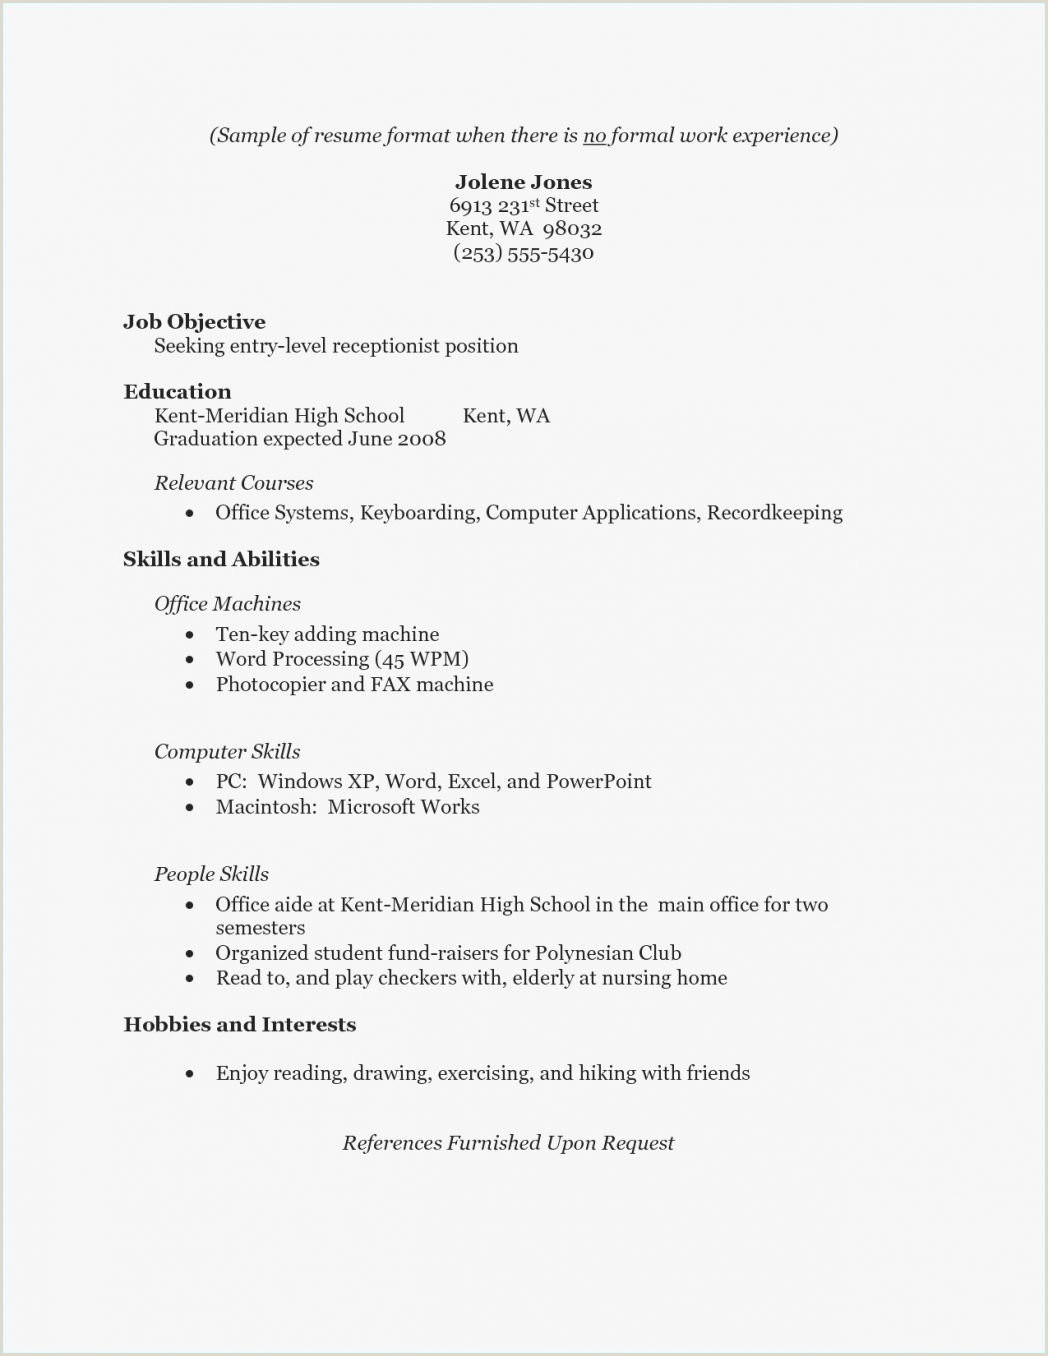 Resume format for Job Objective Resume for Receptionist with No Experience Unique Nanny